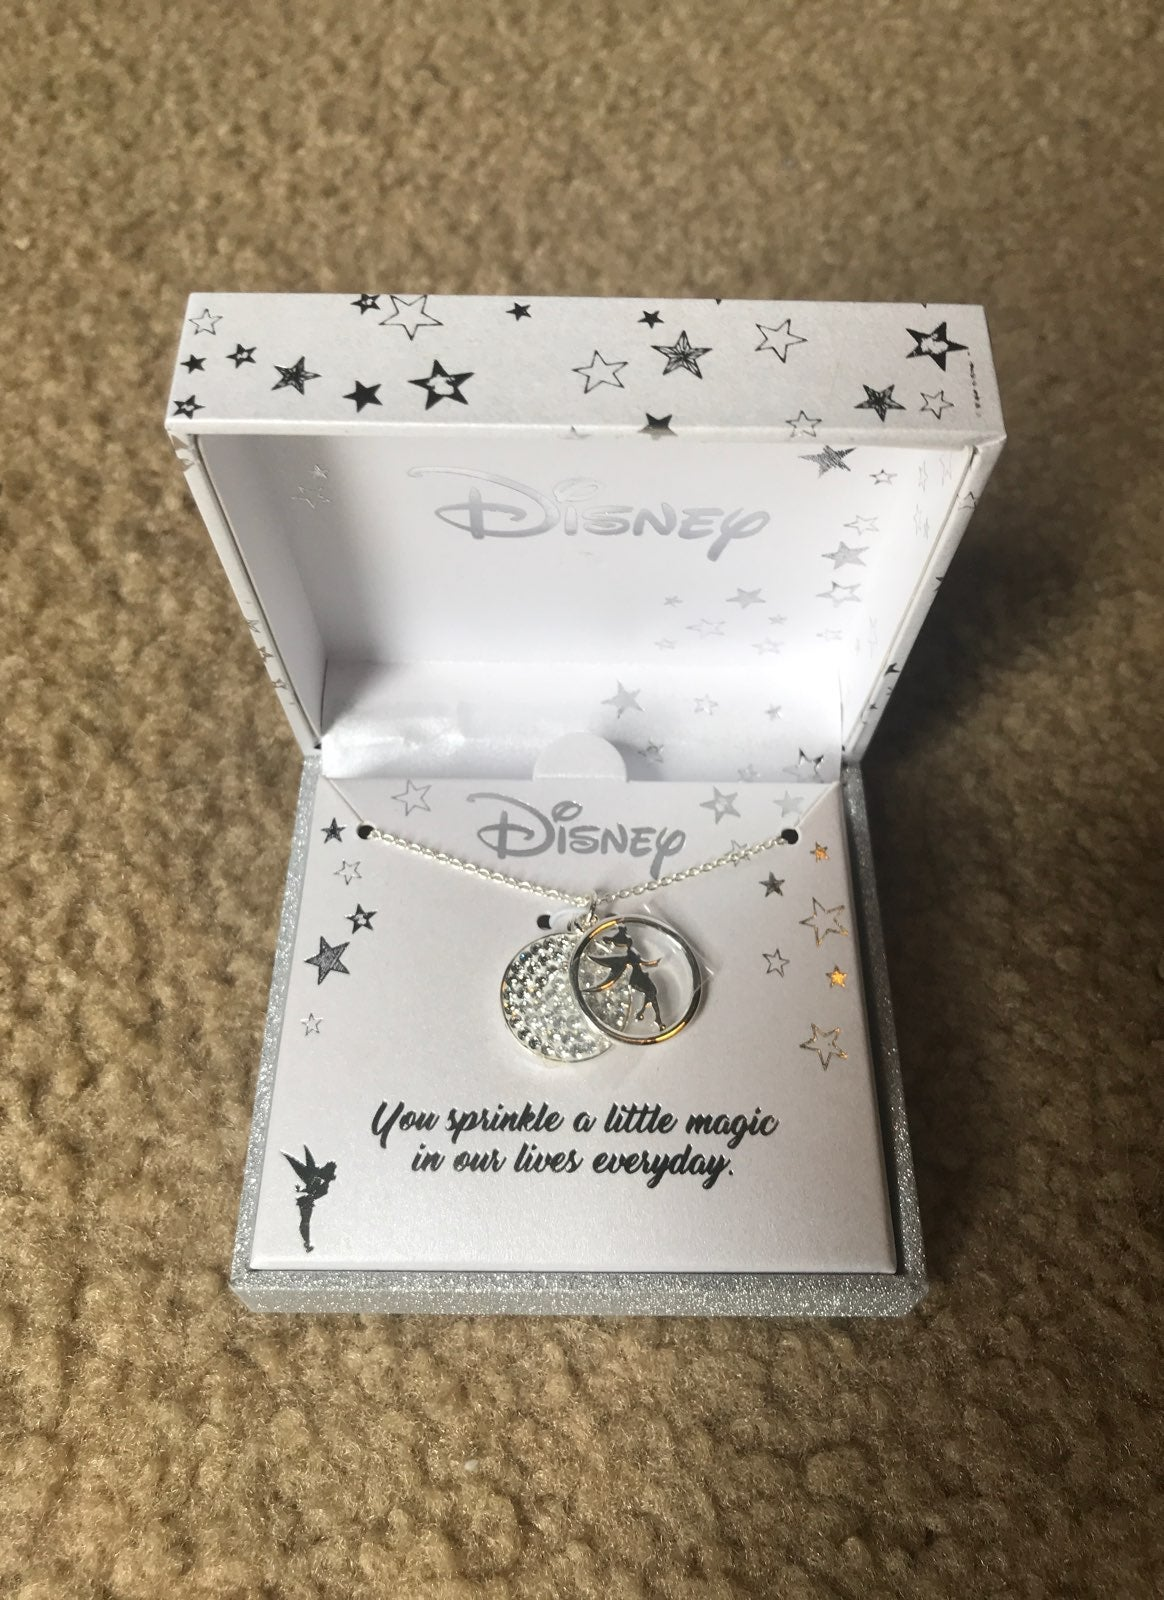 New Disney Tinkerbell Necklace